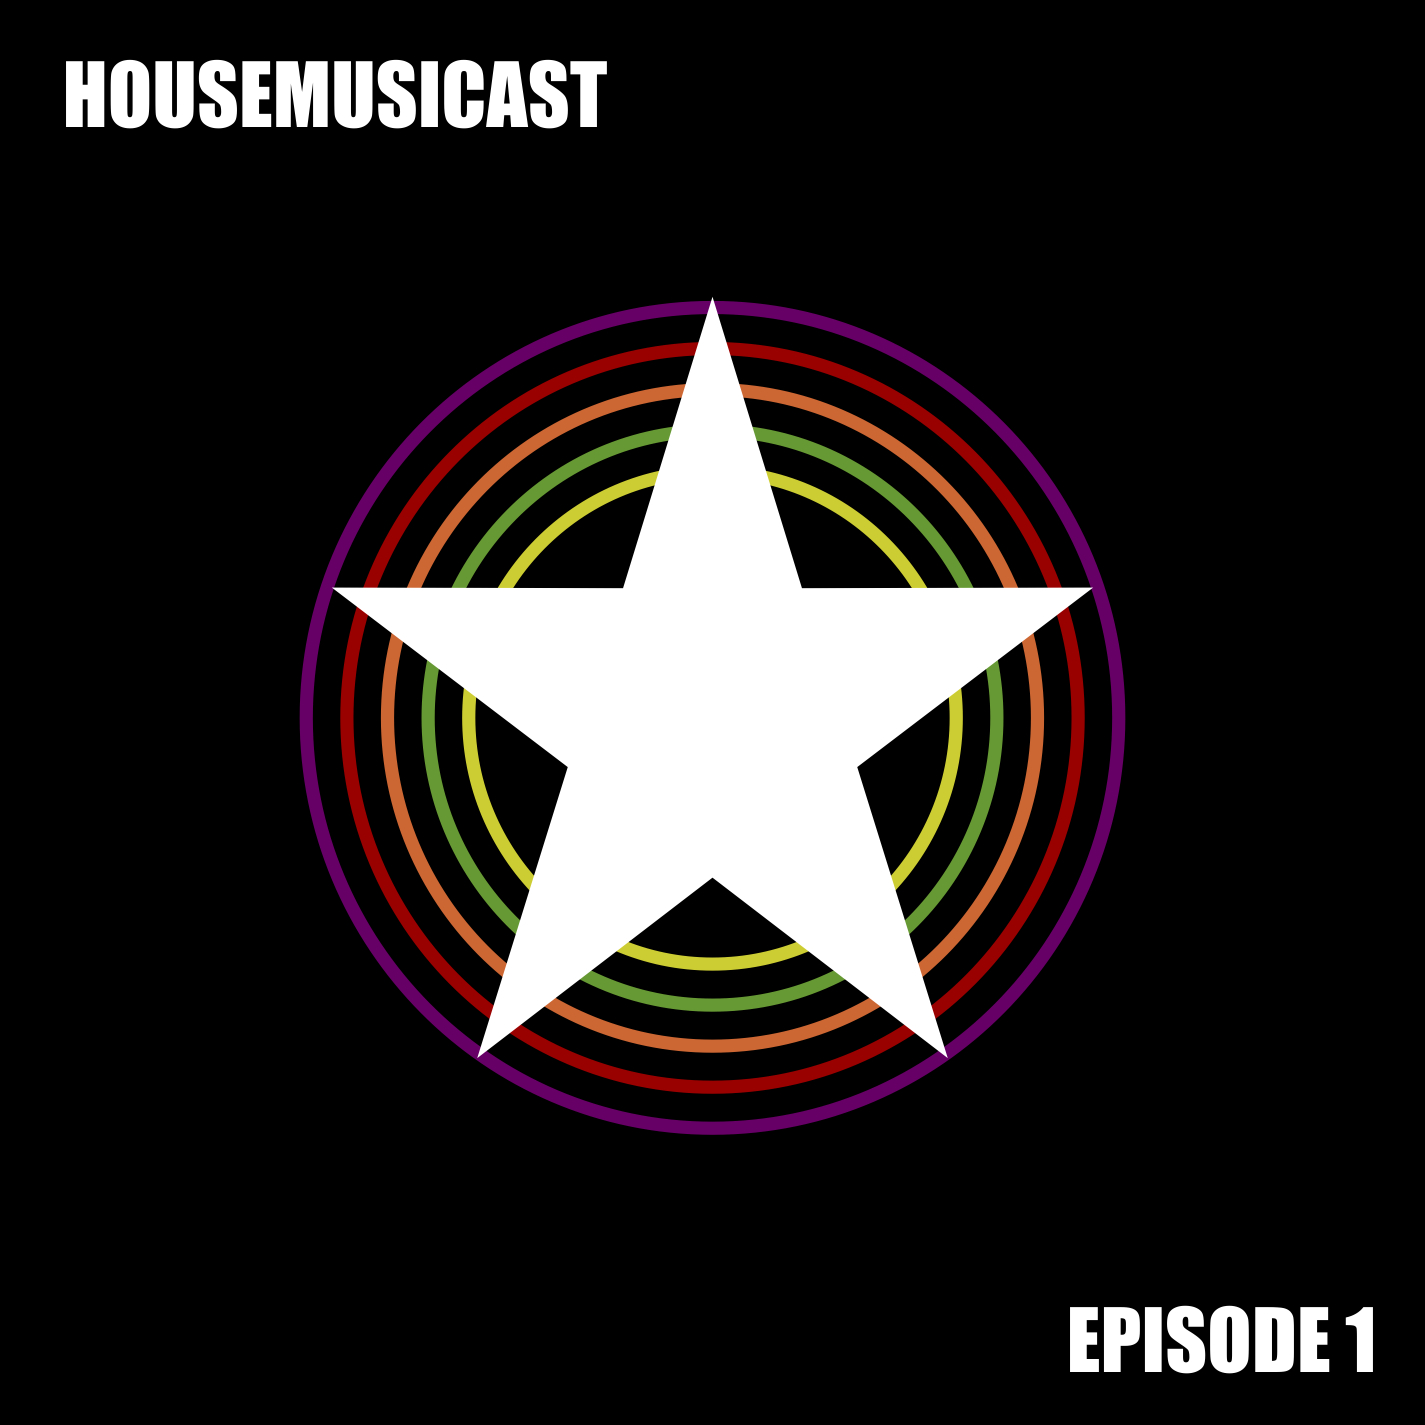 House music cast episode 1 house music cast podcast for House music podcast